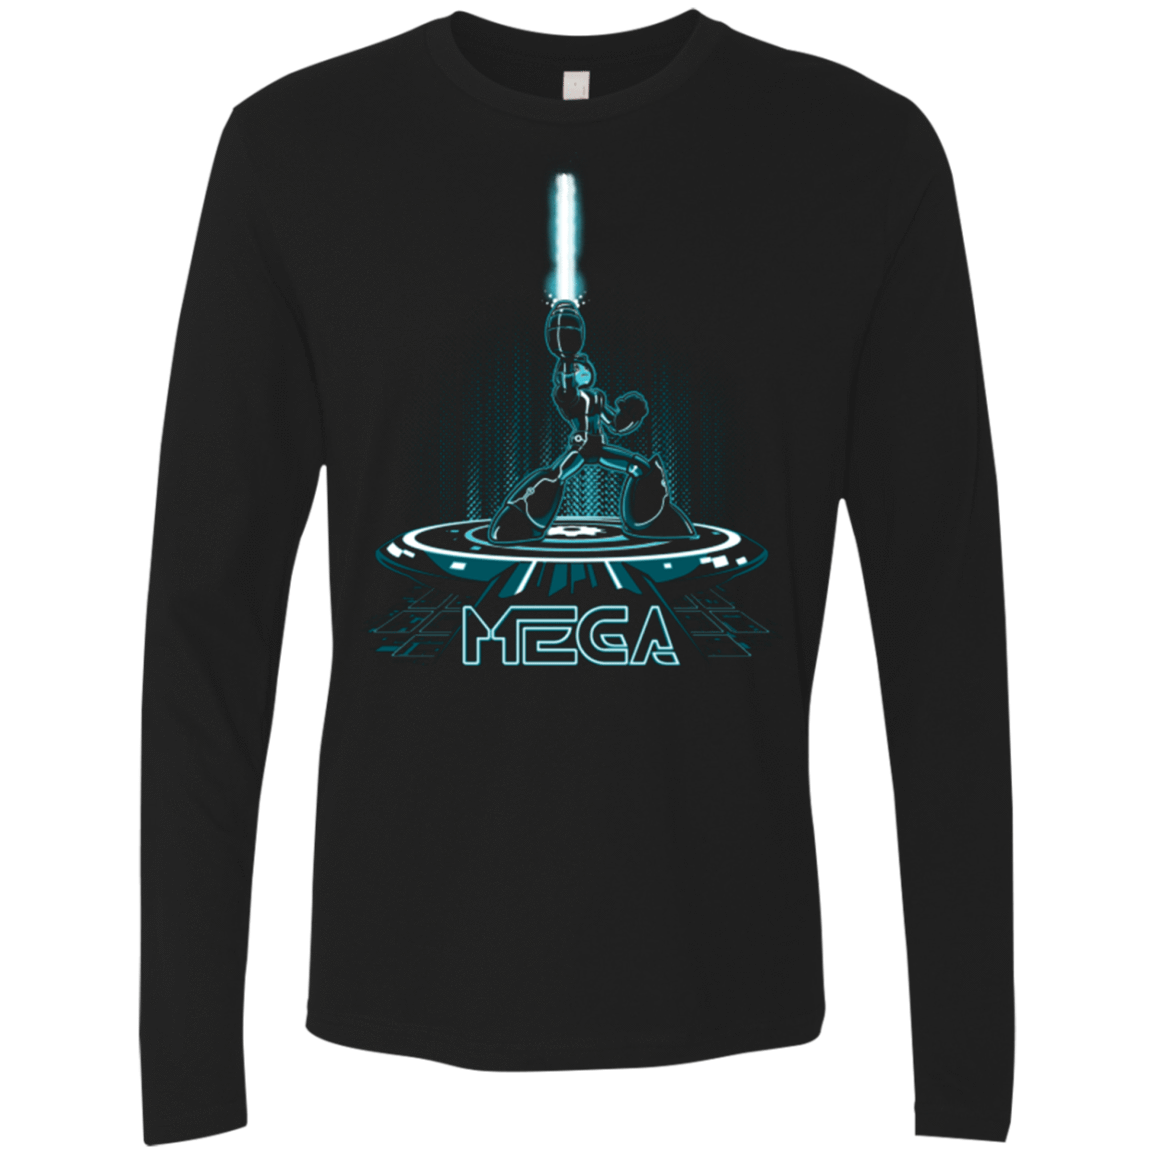 MEGA Men's Premium Long Sleeve